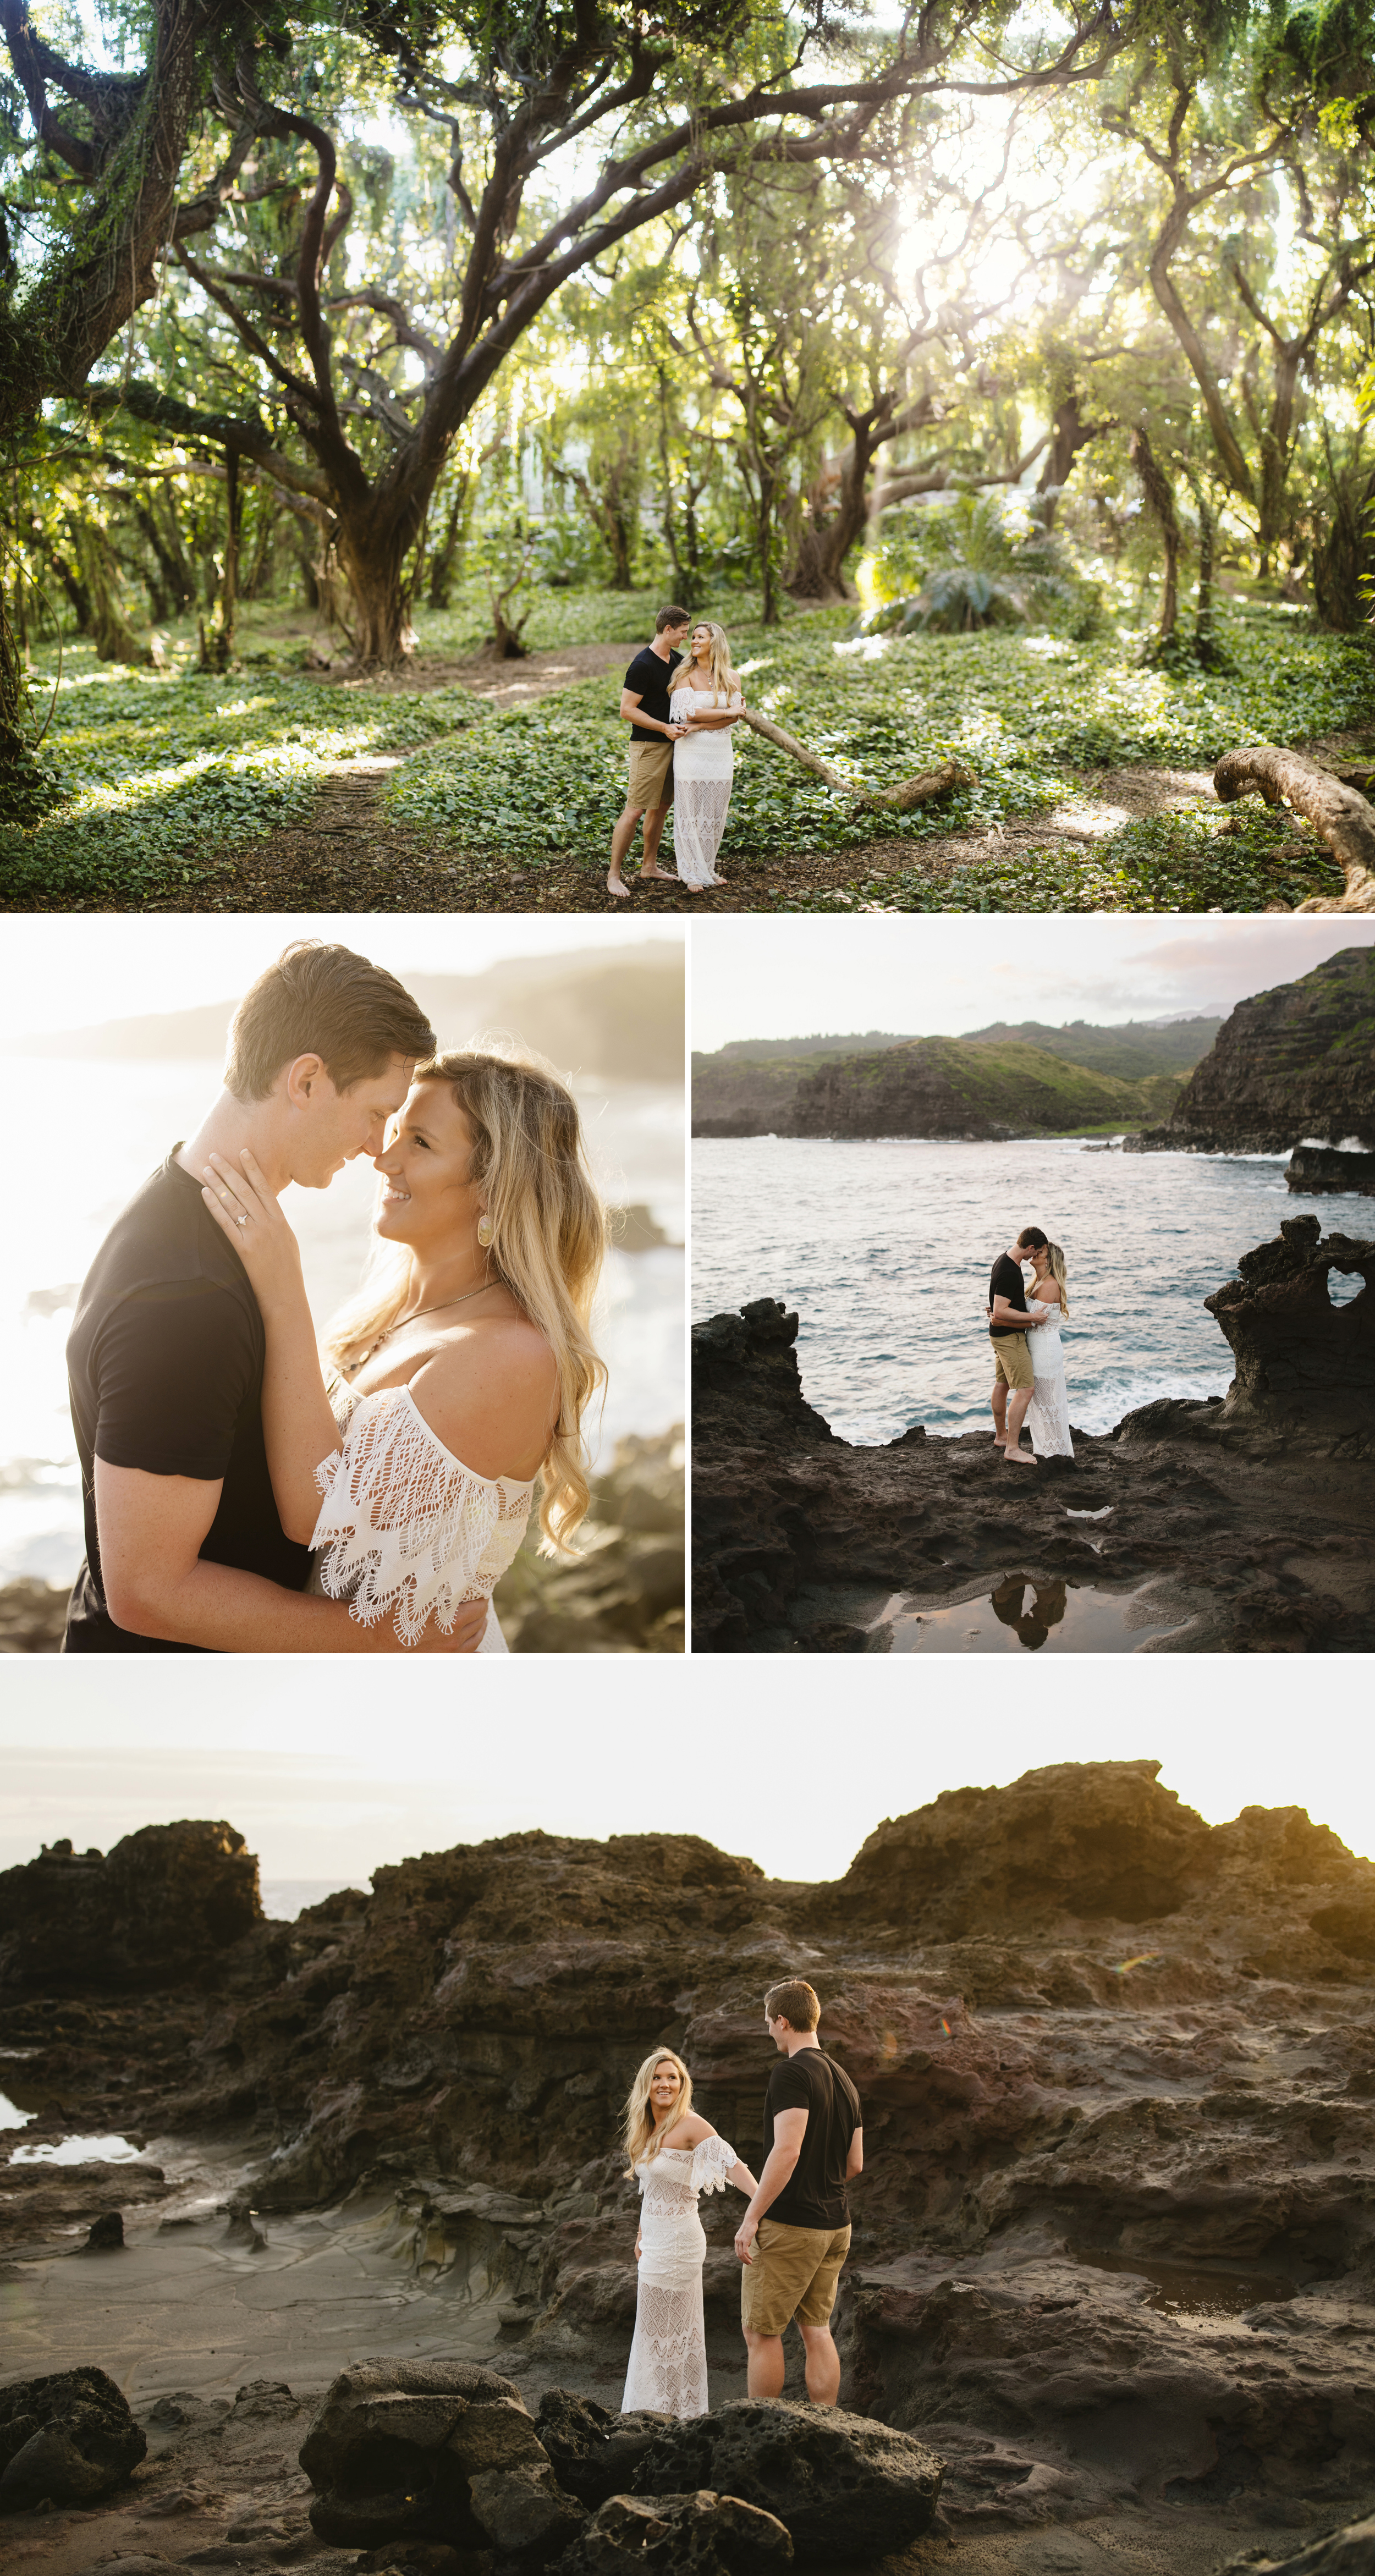 Maui-hawaii-destination-adventure-elopement-photographer.jpg